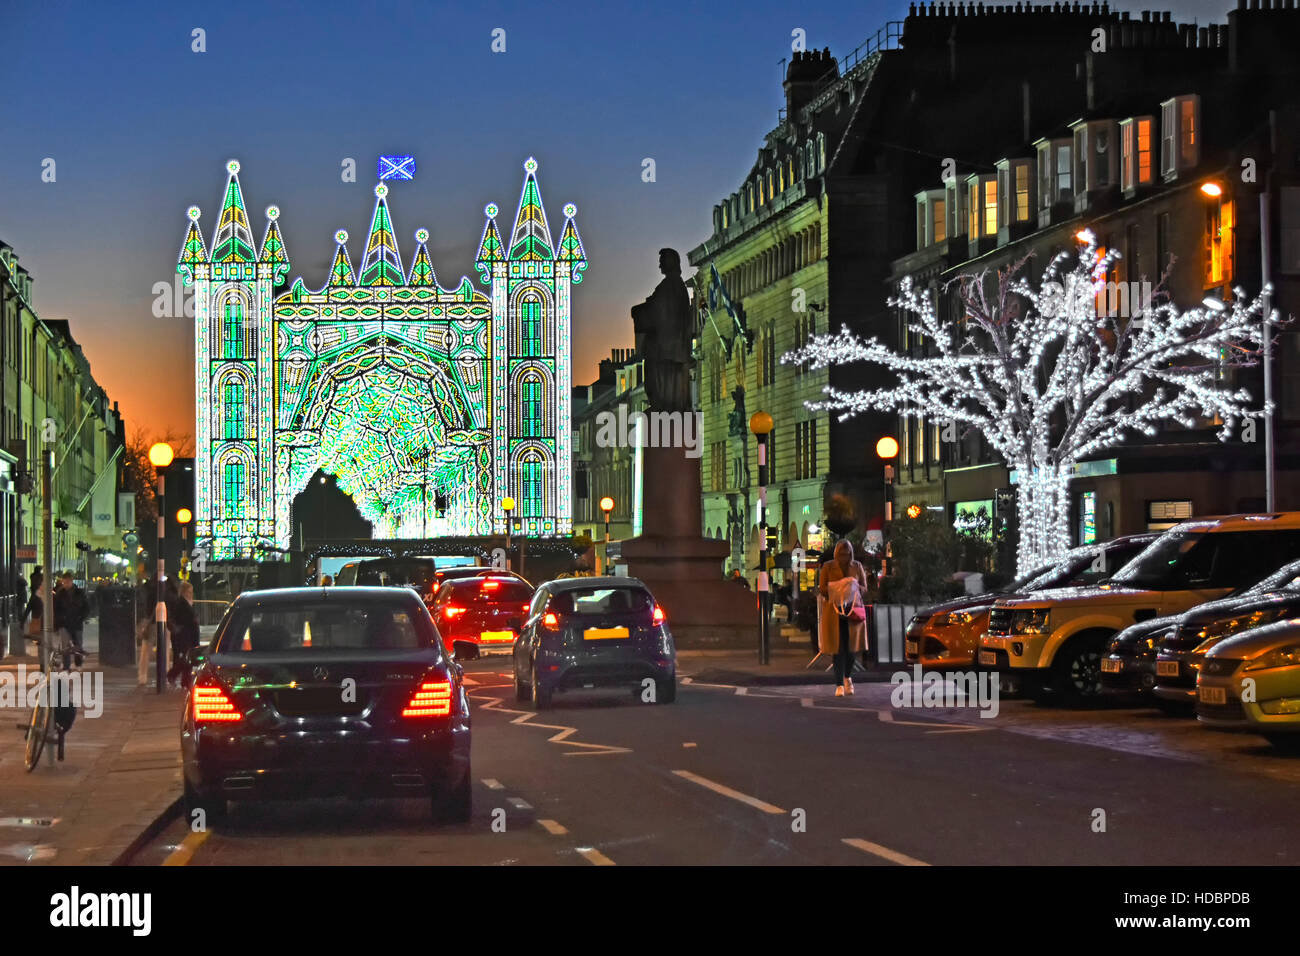 Scottish Edinburgh Christmas Street of Light show in road Xmas lights part of George Street New Town dusk sunset - Stock Image